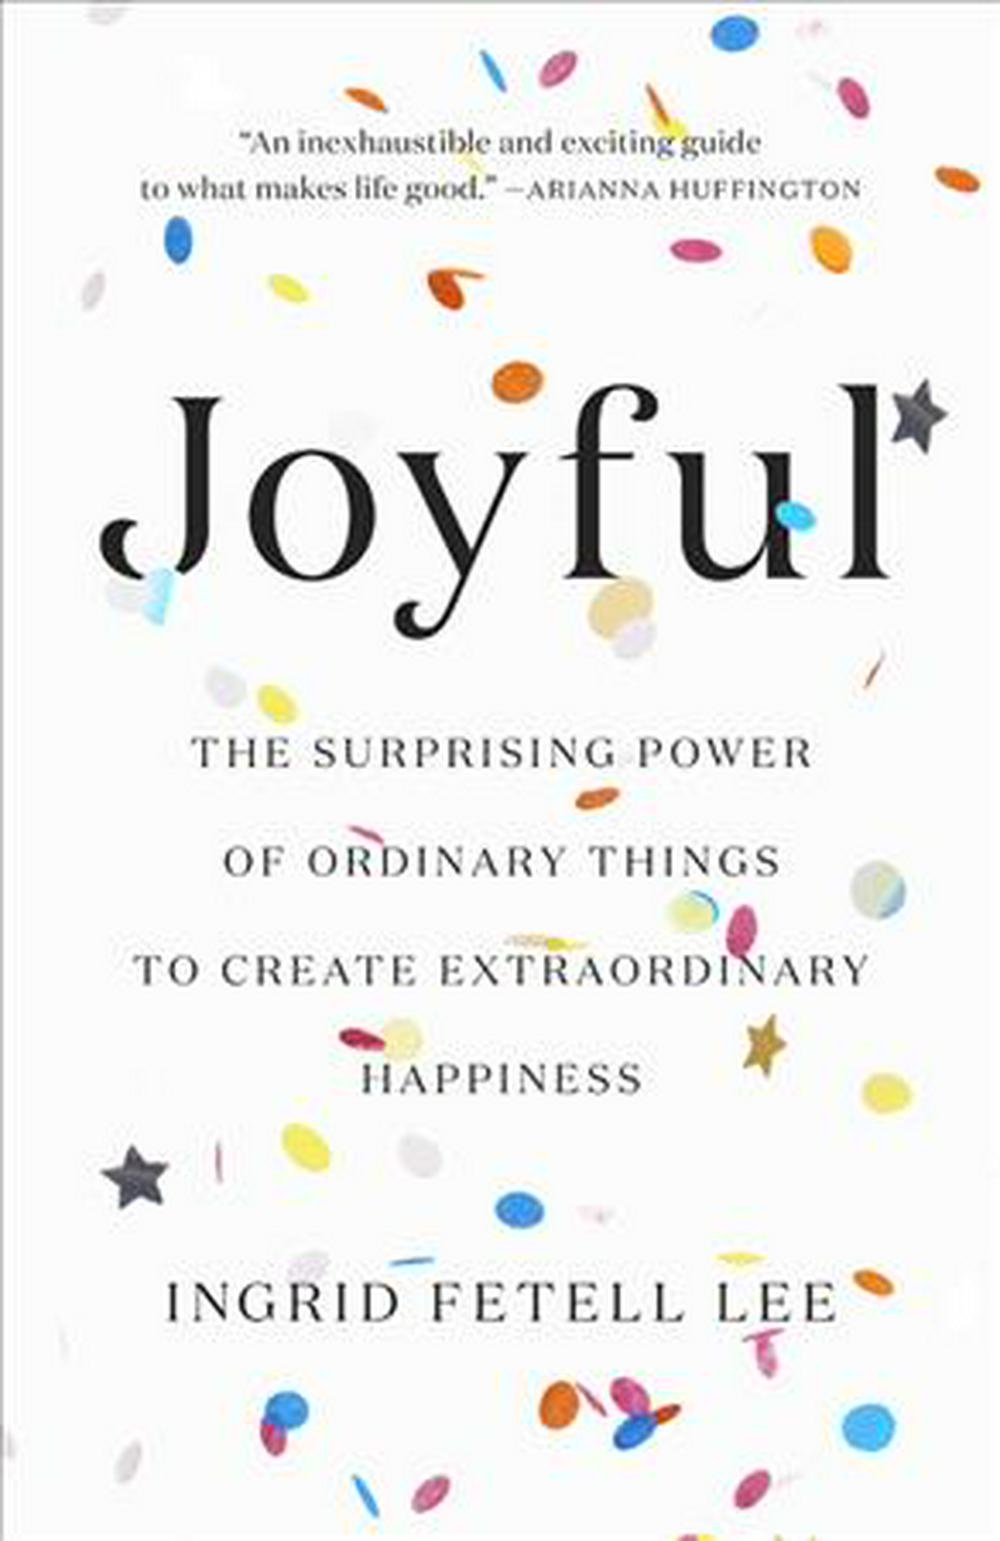 Joyful: The Surprising Power of Ordinary Things to Create Extraordinary Happiness by Ingrid Fetell Lee, ISBN: 9780316399265